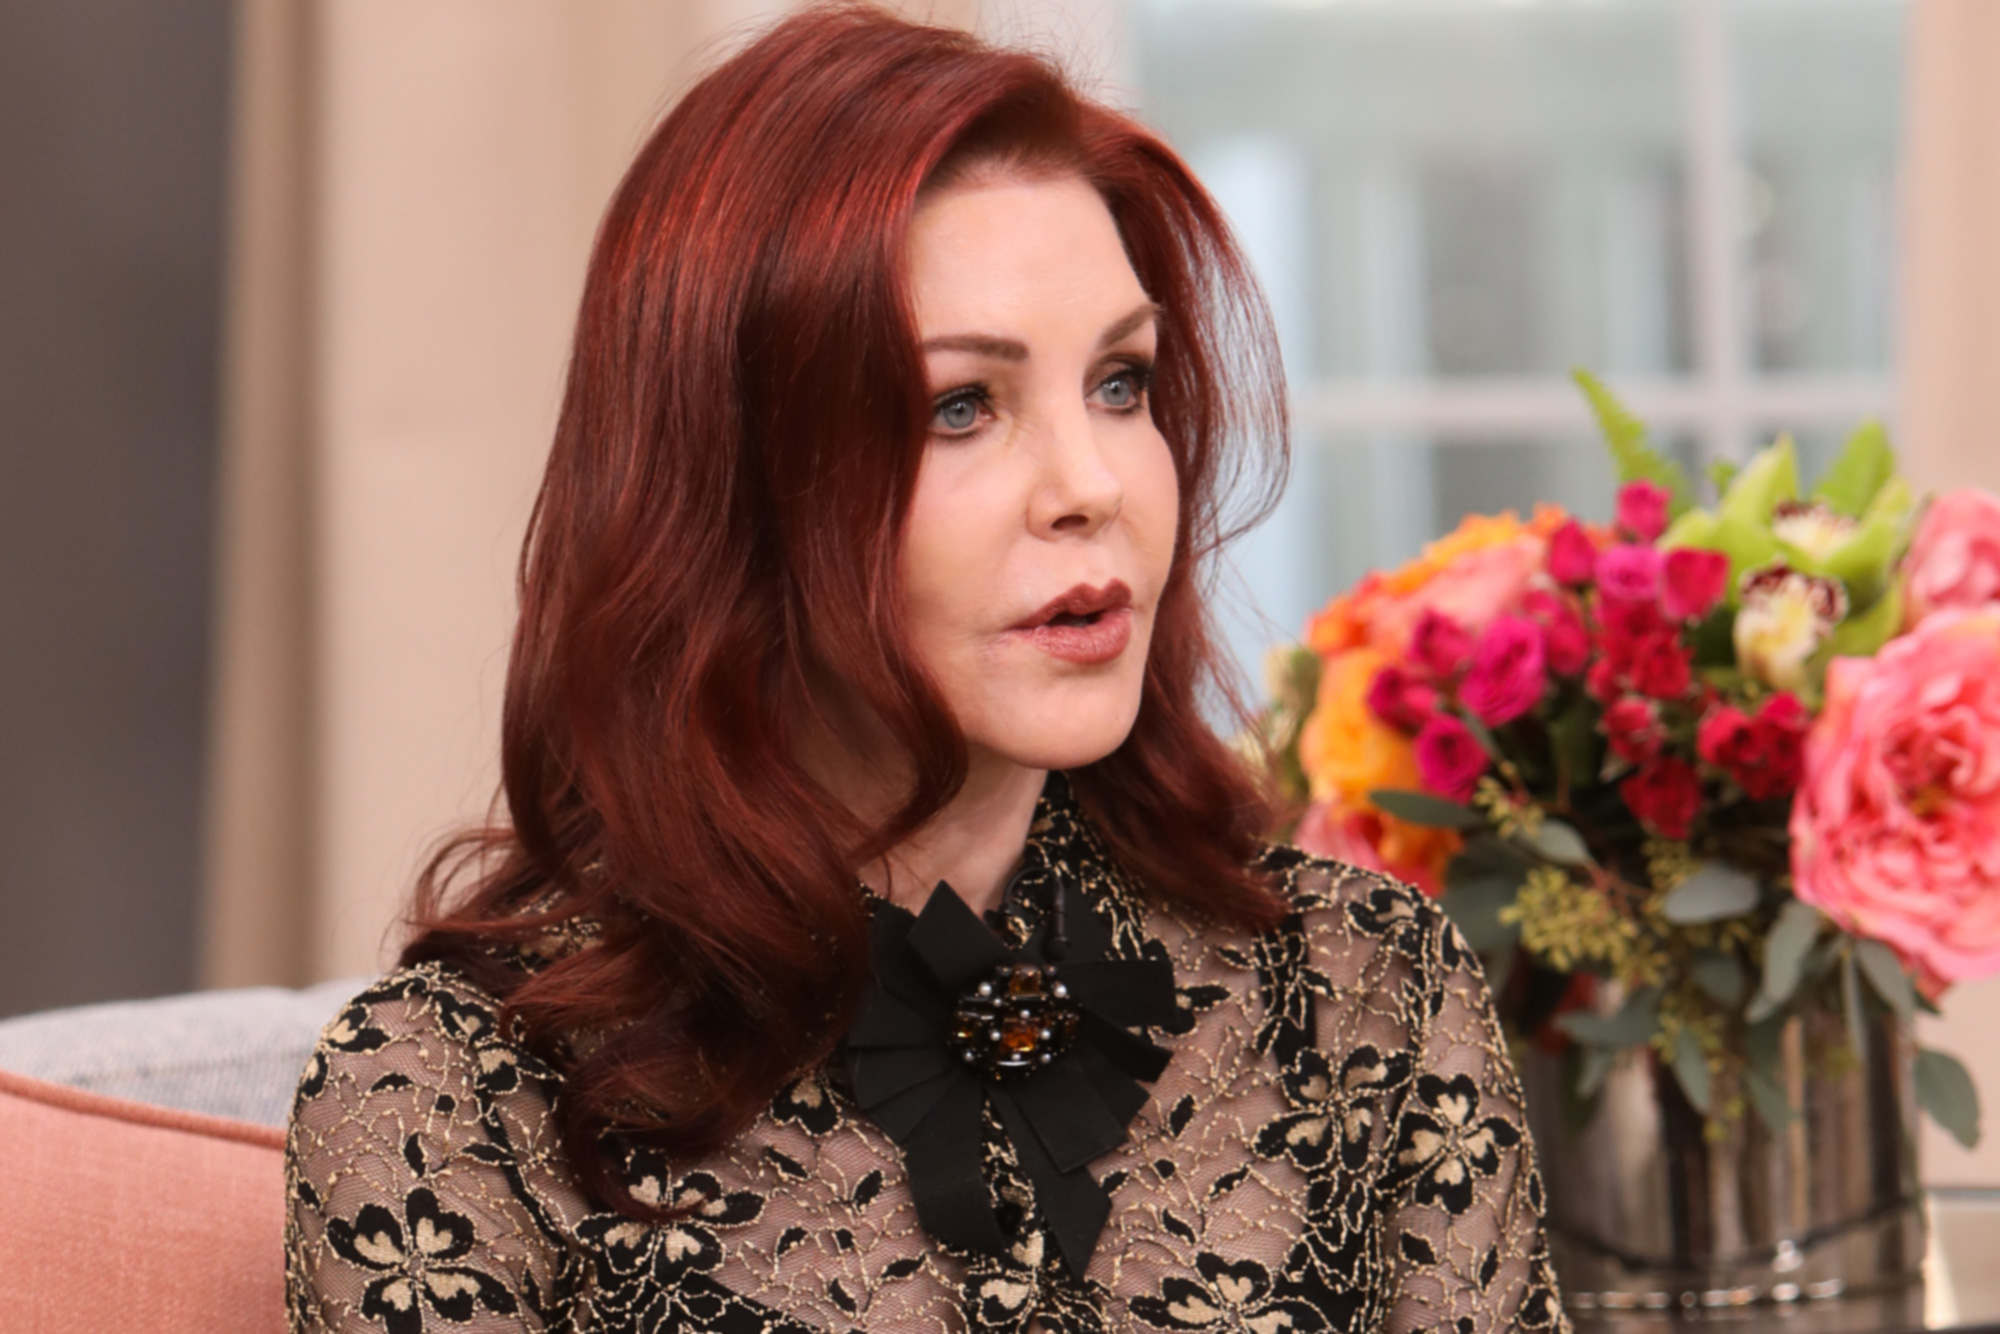 Priscilla Presley These Are The Darkest Days Of My Family S Life